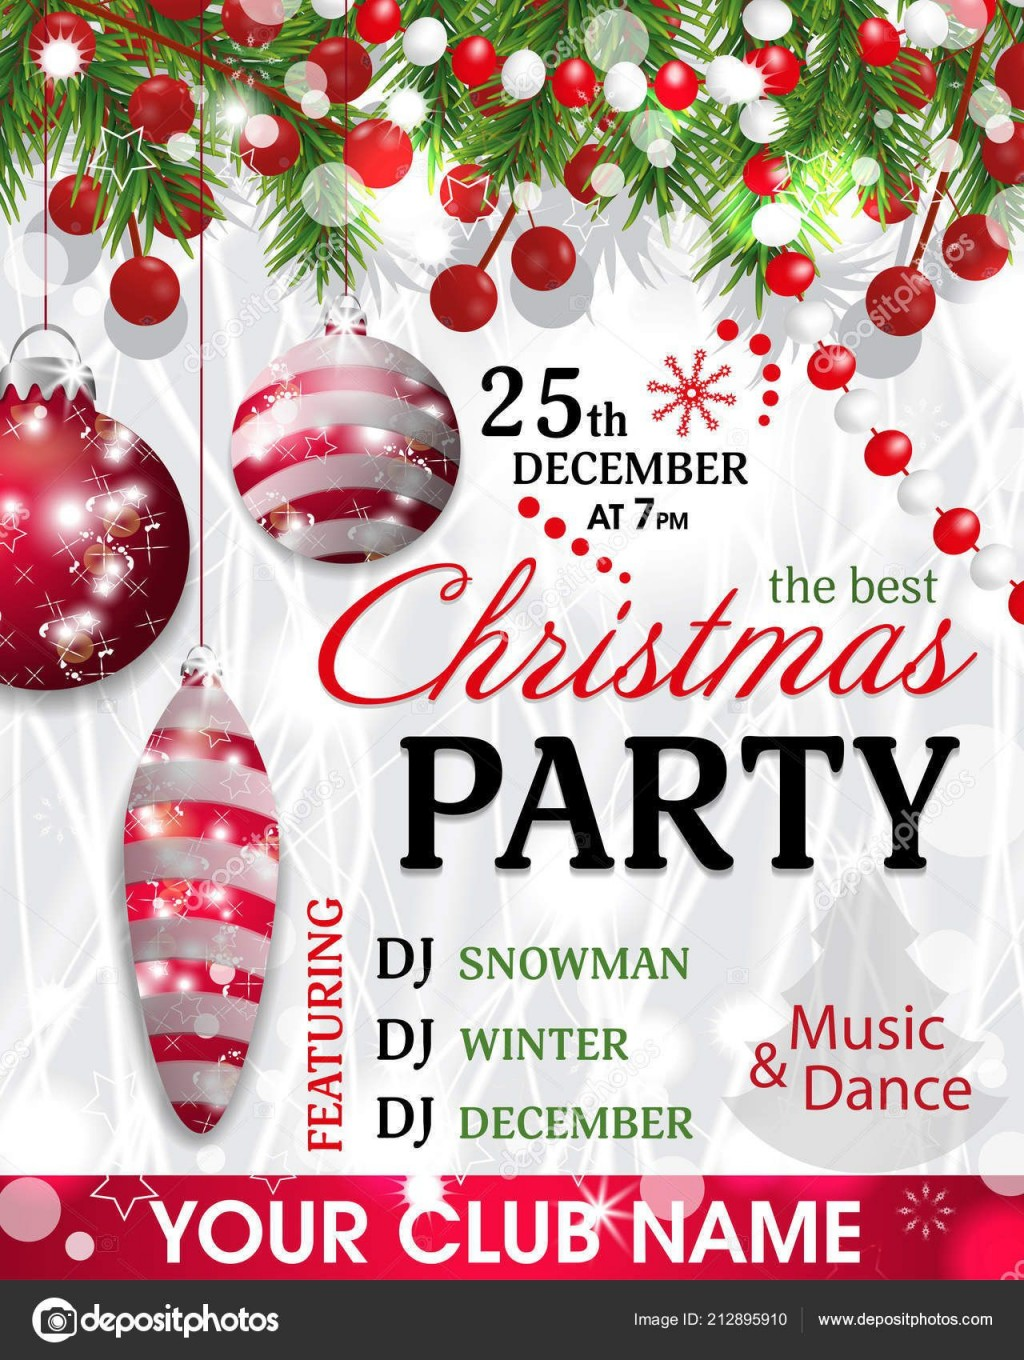 005 Unbelievable Christma Party Invitation Template Design  Funny Free Download Word CardLarge